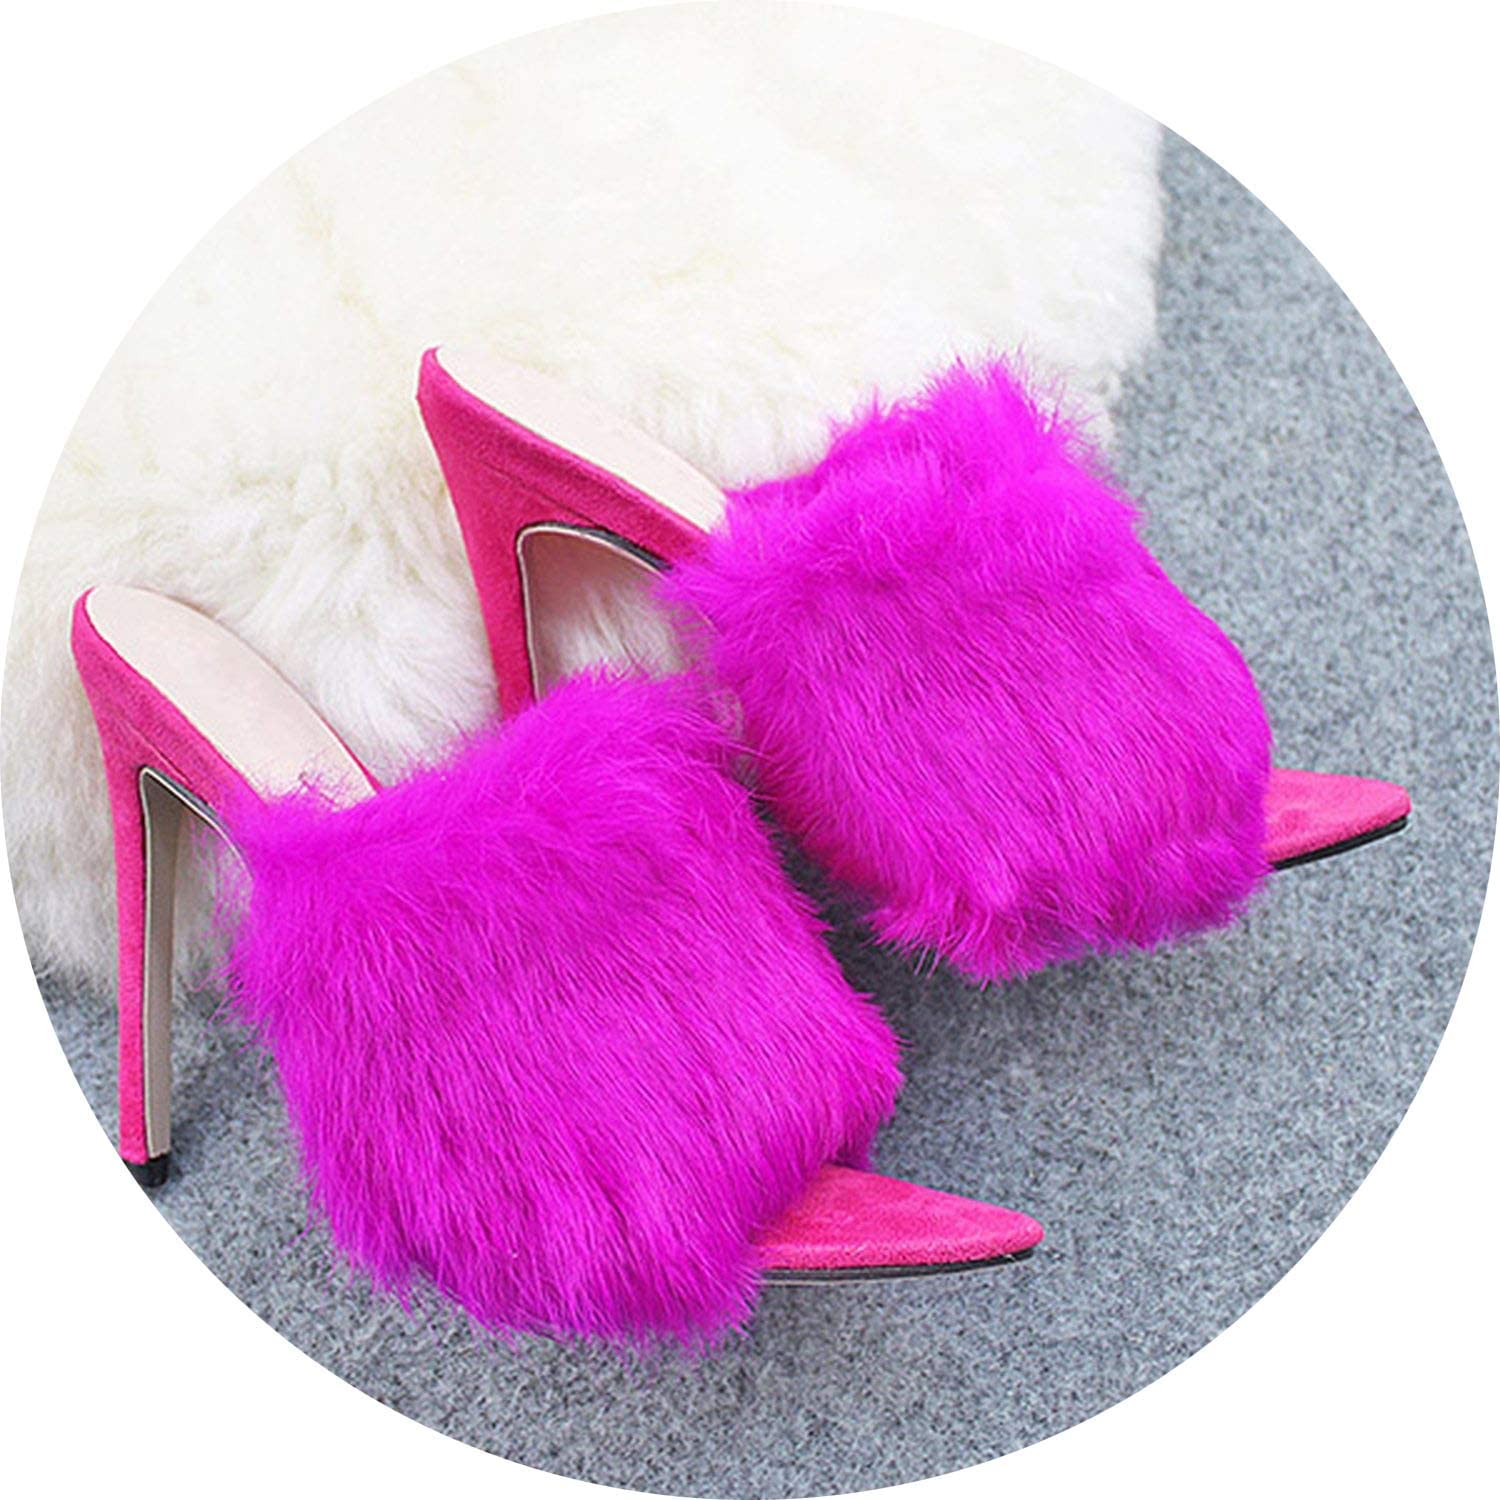 Get-in Women Slippers Mules High Heels Summer shoes Fur Sexy Peep Toes Woman Slides Outdoor Sandals